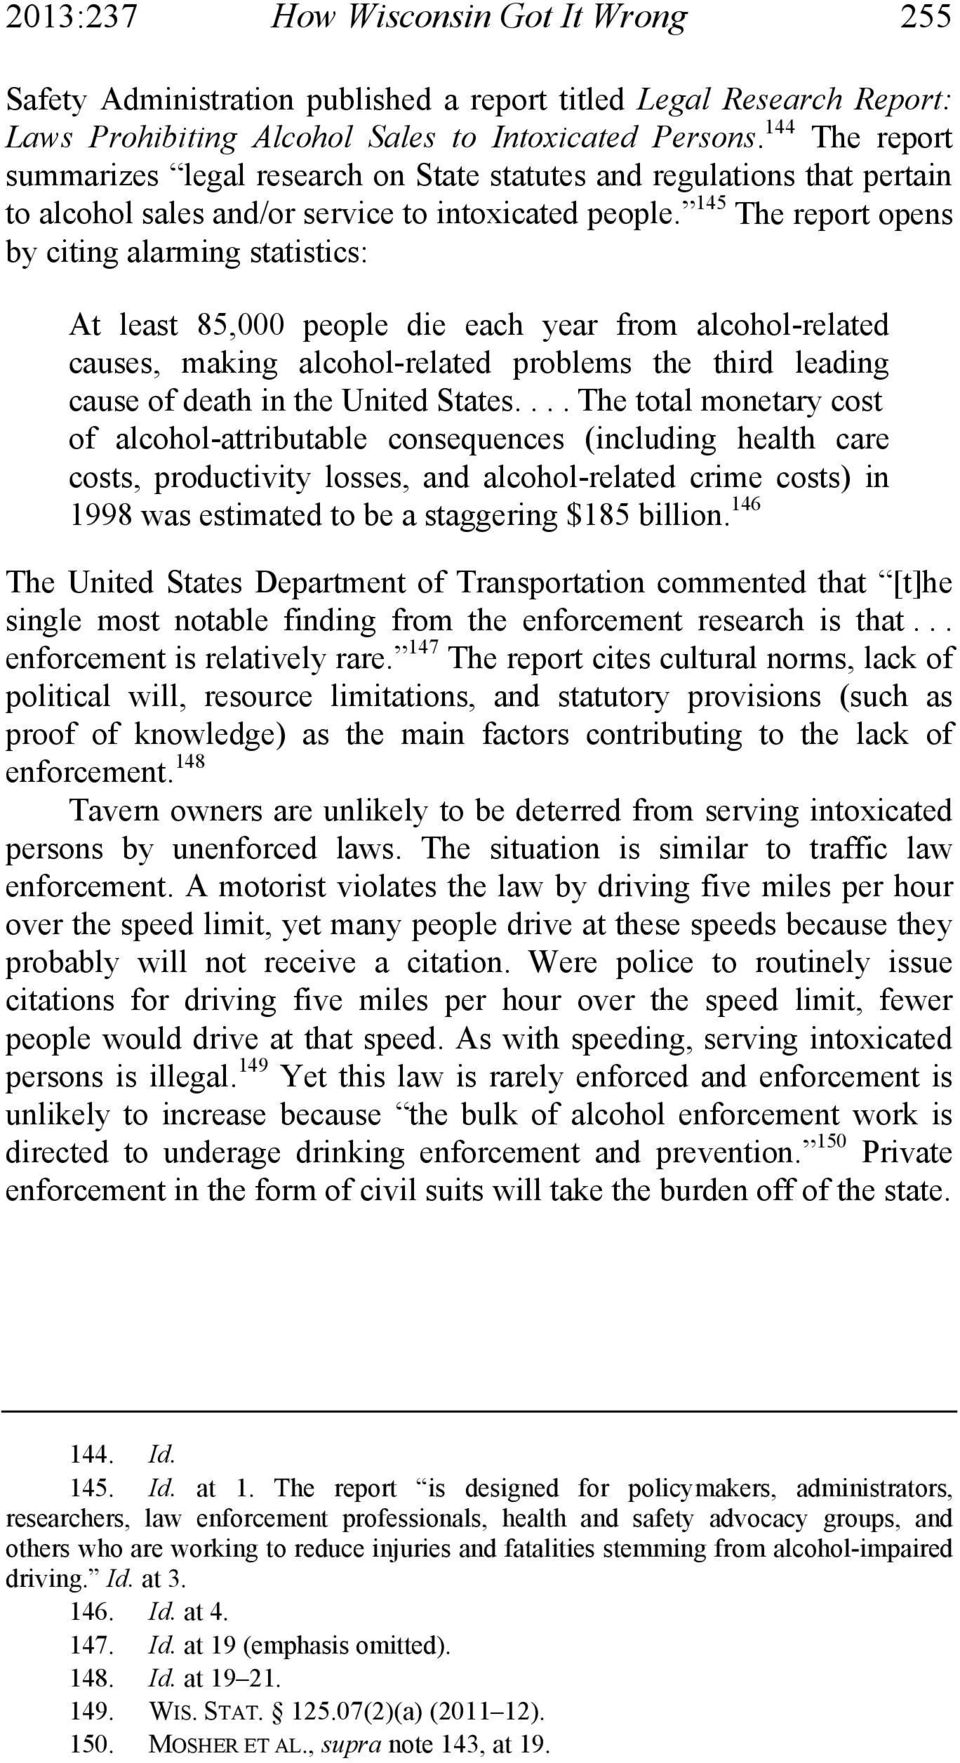 145 The report opens by citing alarming statistics: At least 85,000 people die each year from alcohol-related causes, making alcohol-related problems the third leading cause of death in the United